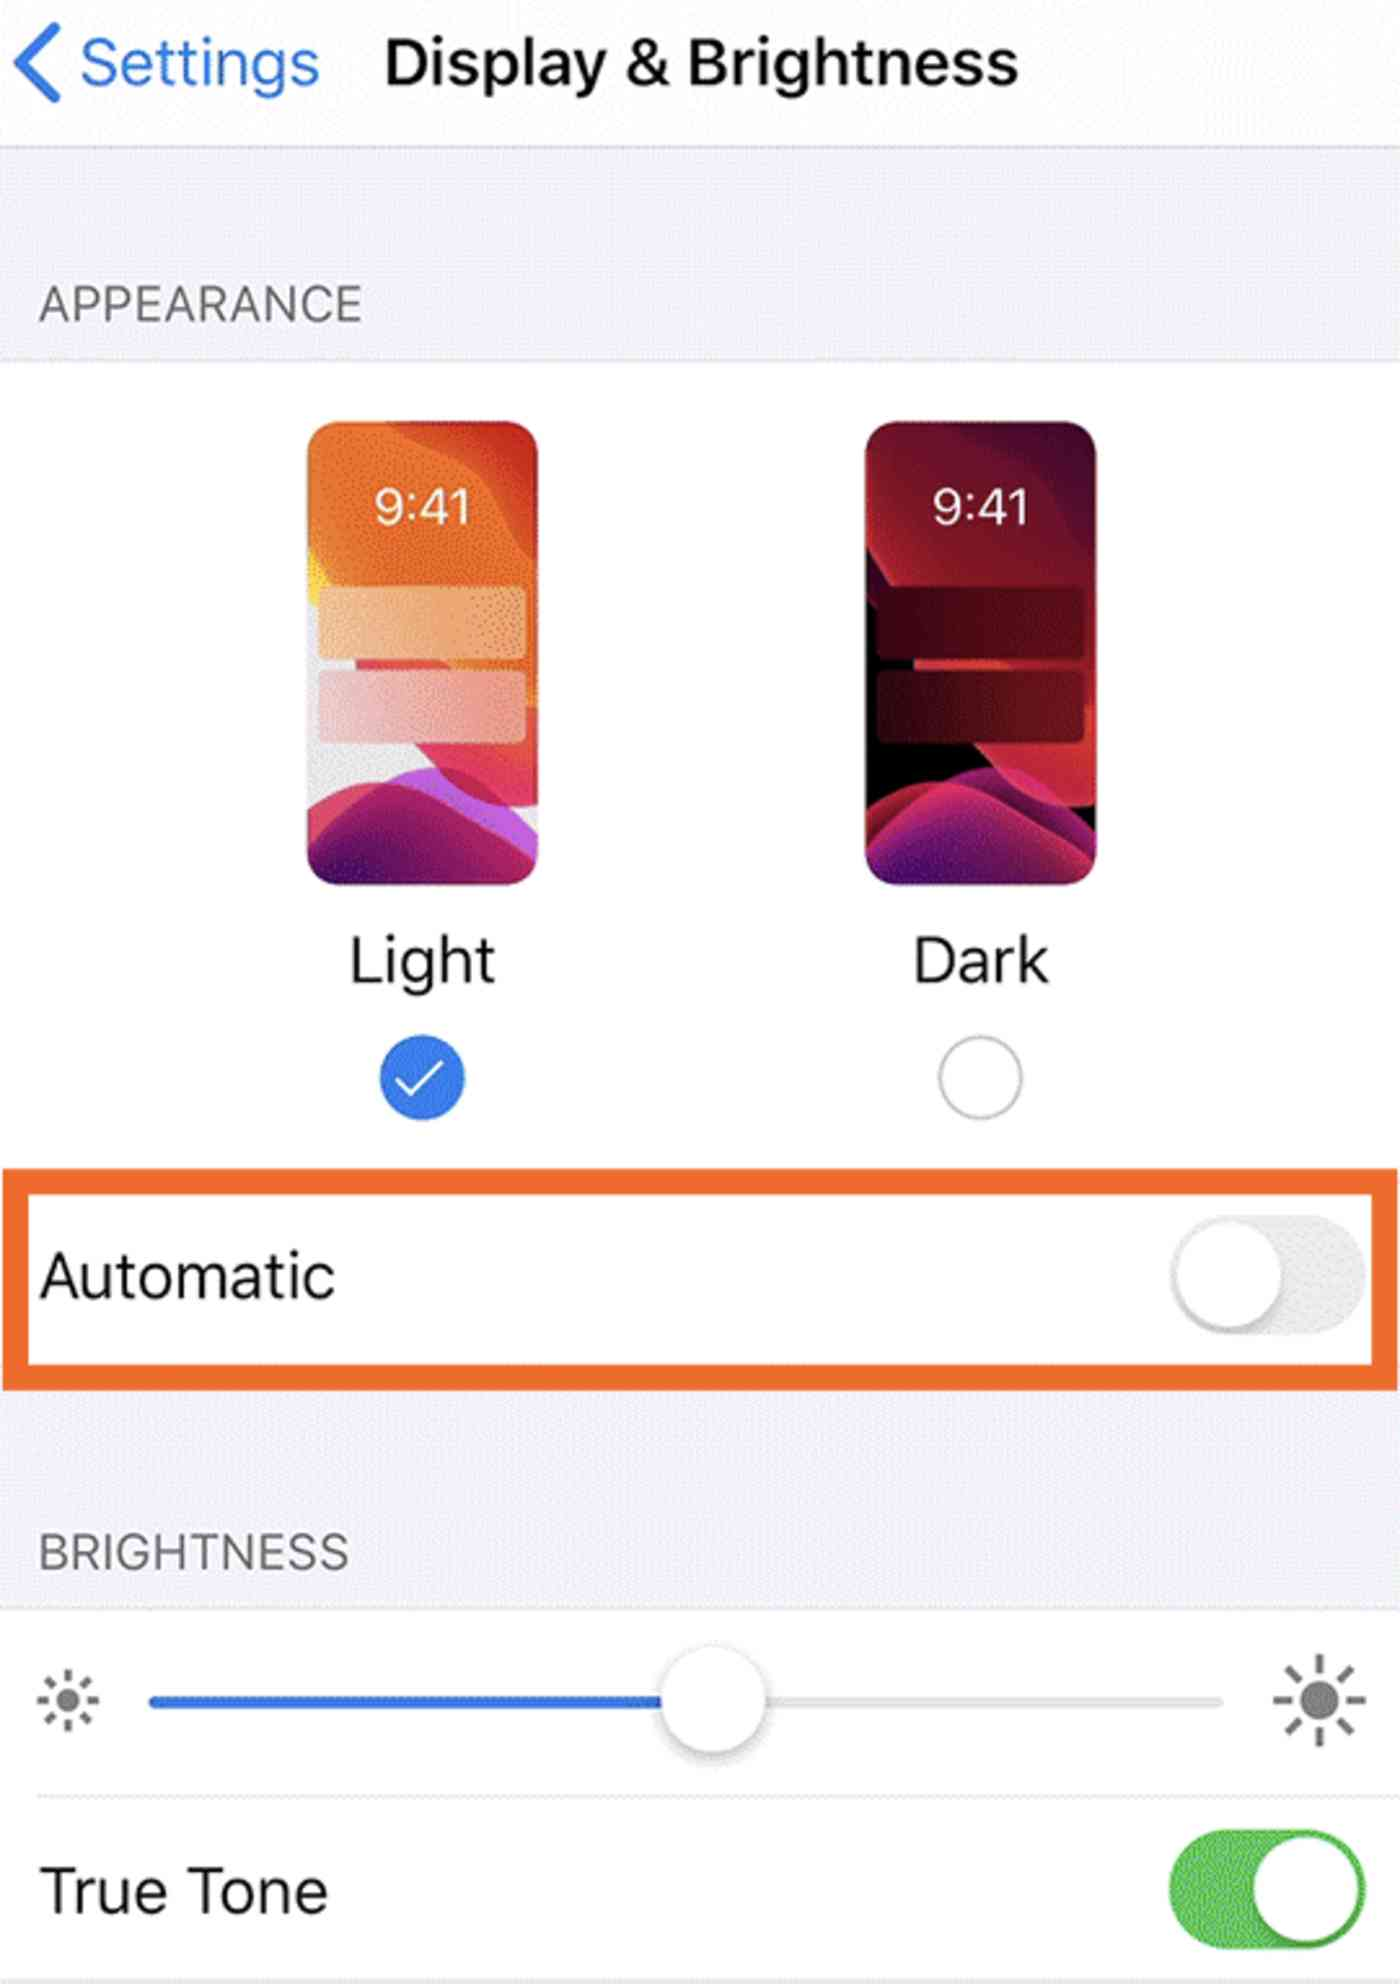 Automatically switch to dark mode at night on your iPhone